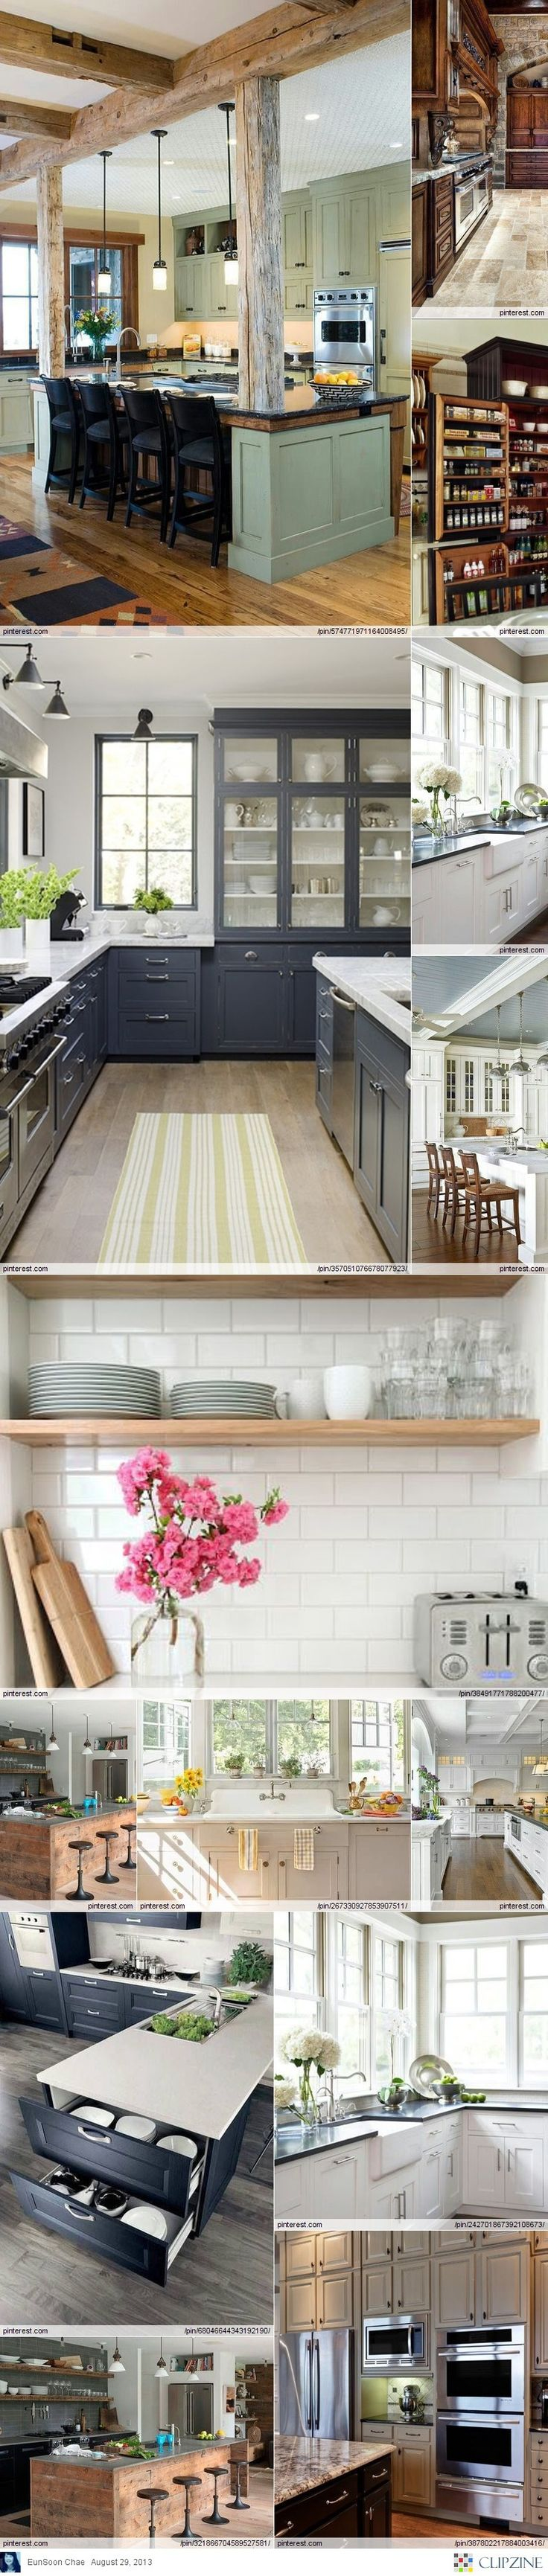 THIS is what my kitchen will look like when that wall gets knocked down!